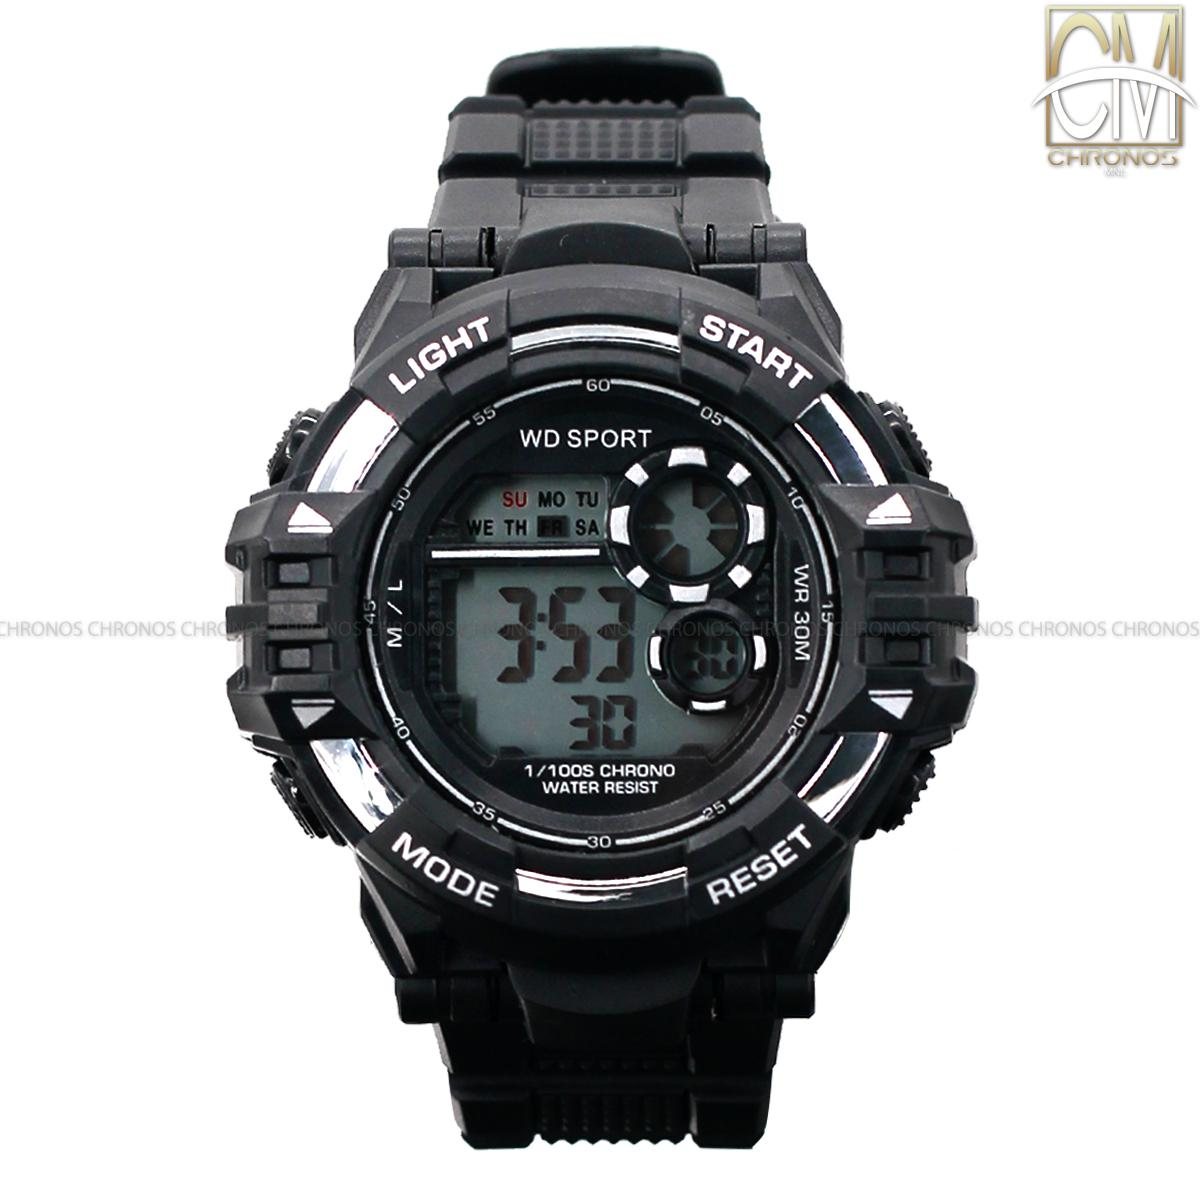 ChronosMNL WD-982 Sportswatch Men Diving Camping Waterproof Clock For Men